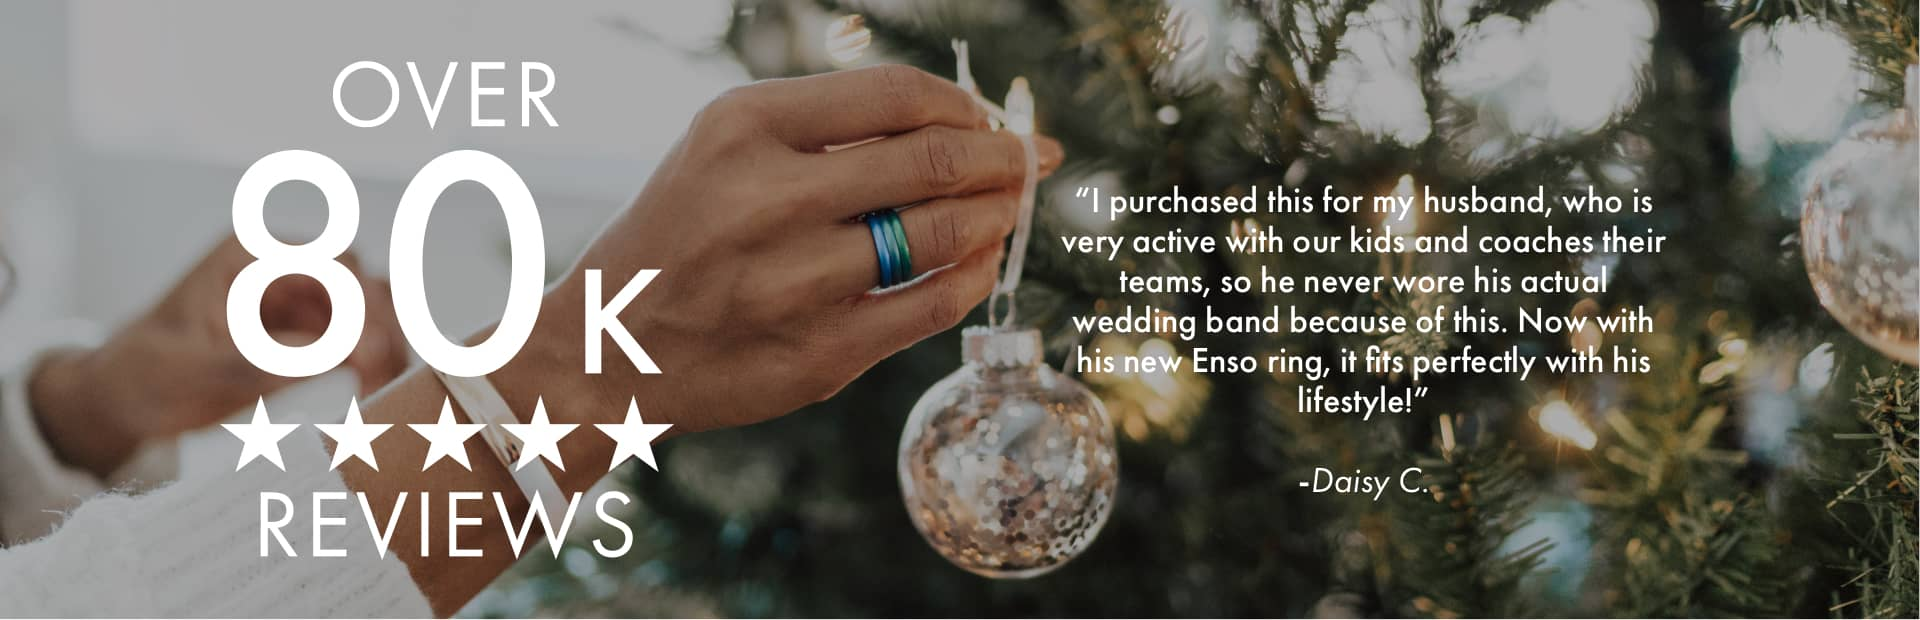 Inked Rings | Holiday Collection | Enso Rings has over 80,000 positive reviews!